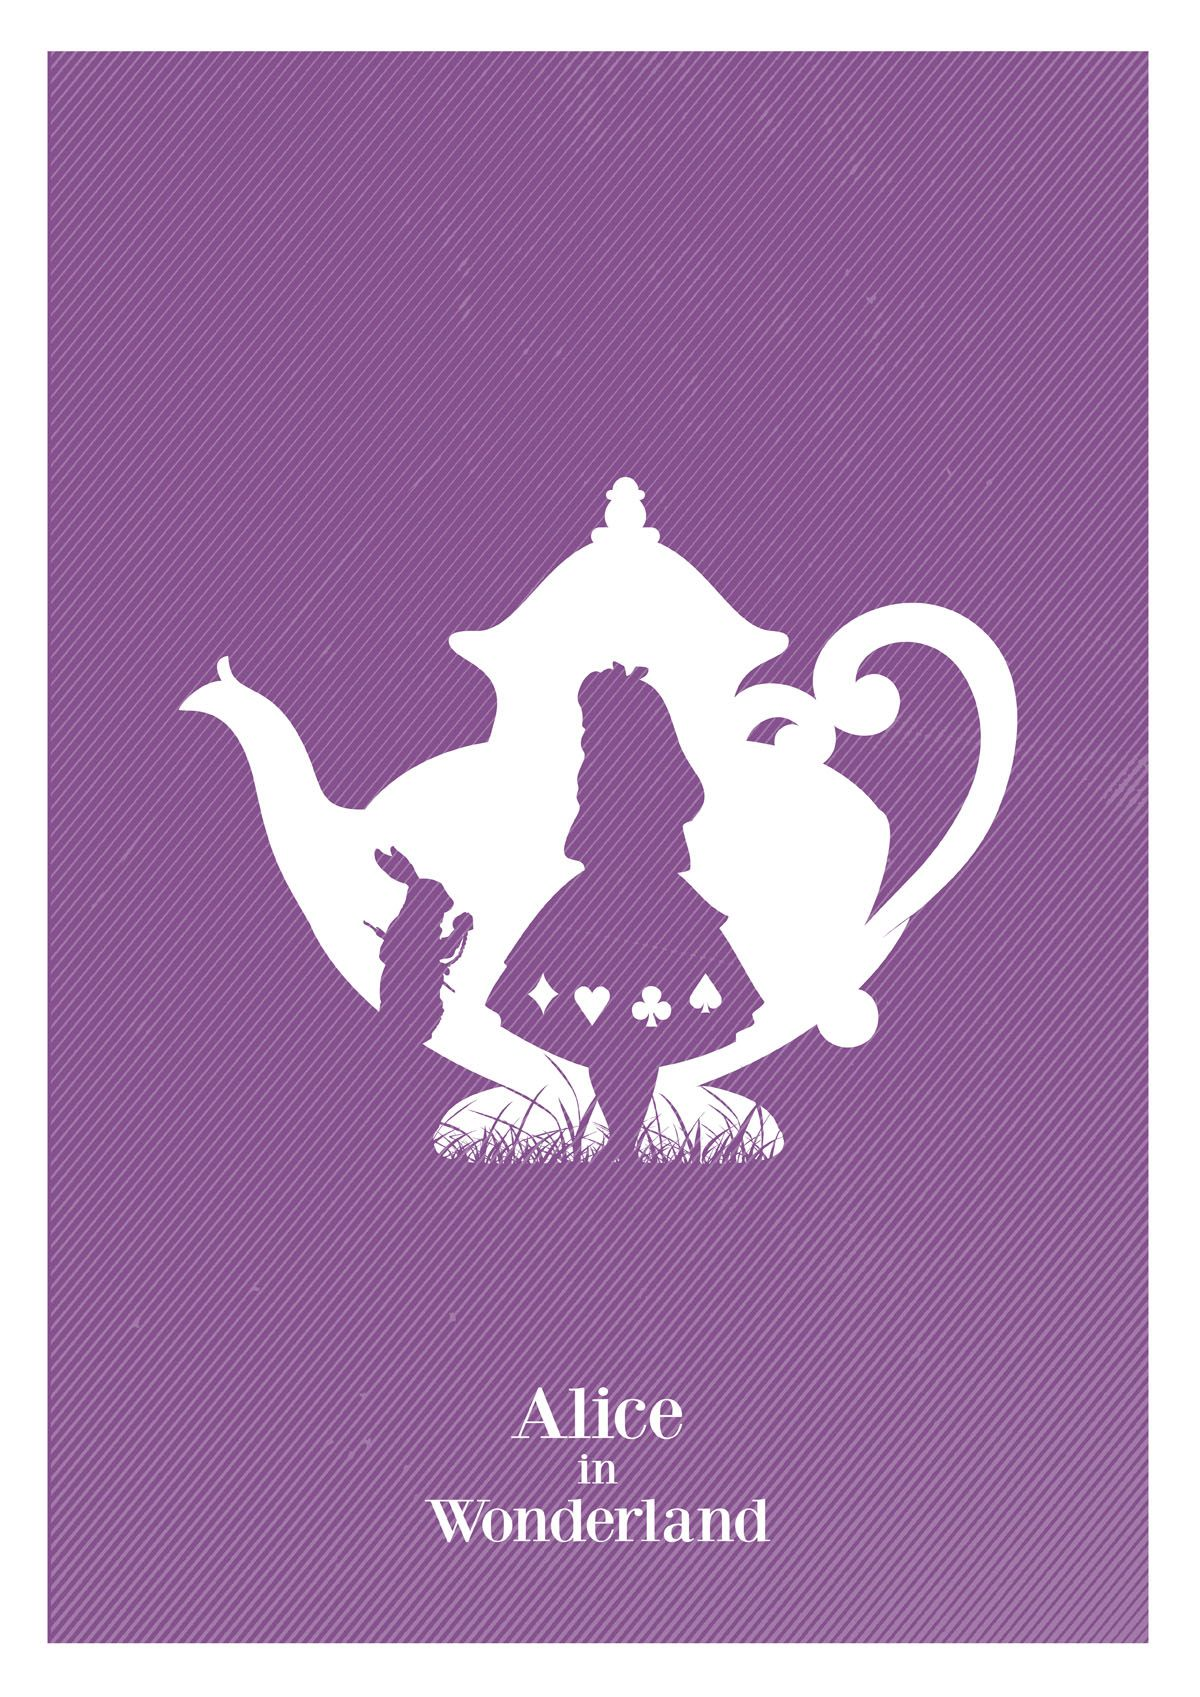 Alternative Alice in Wonderland minimalist giclee art